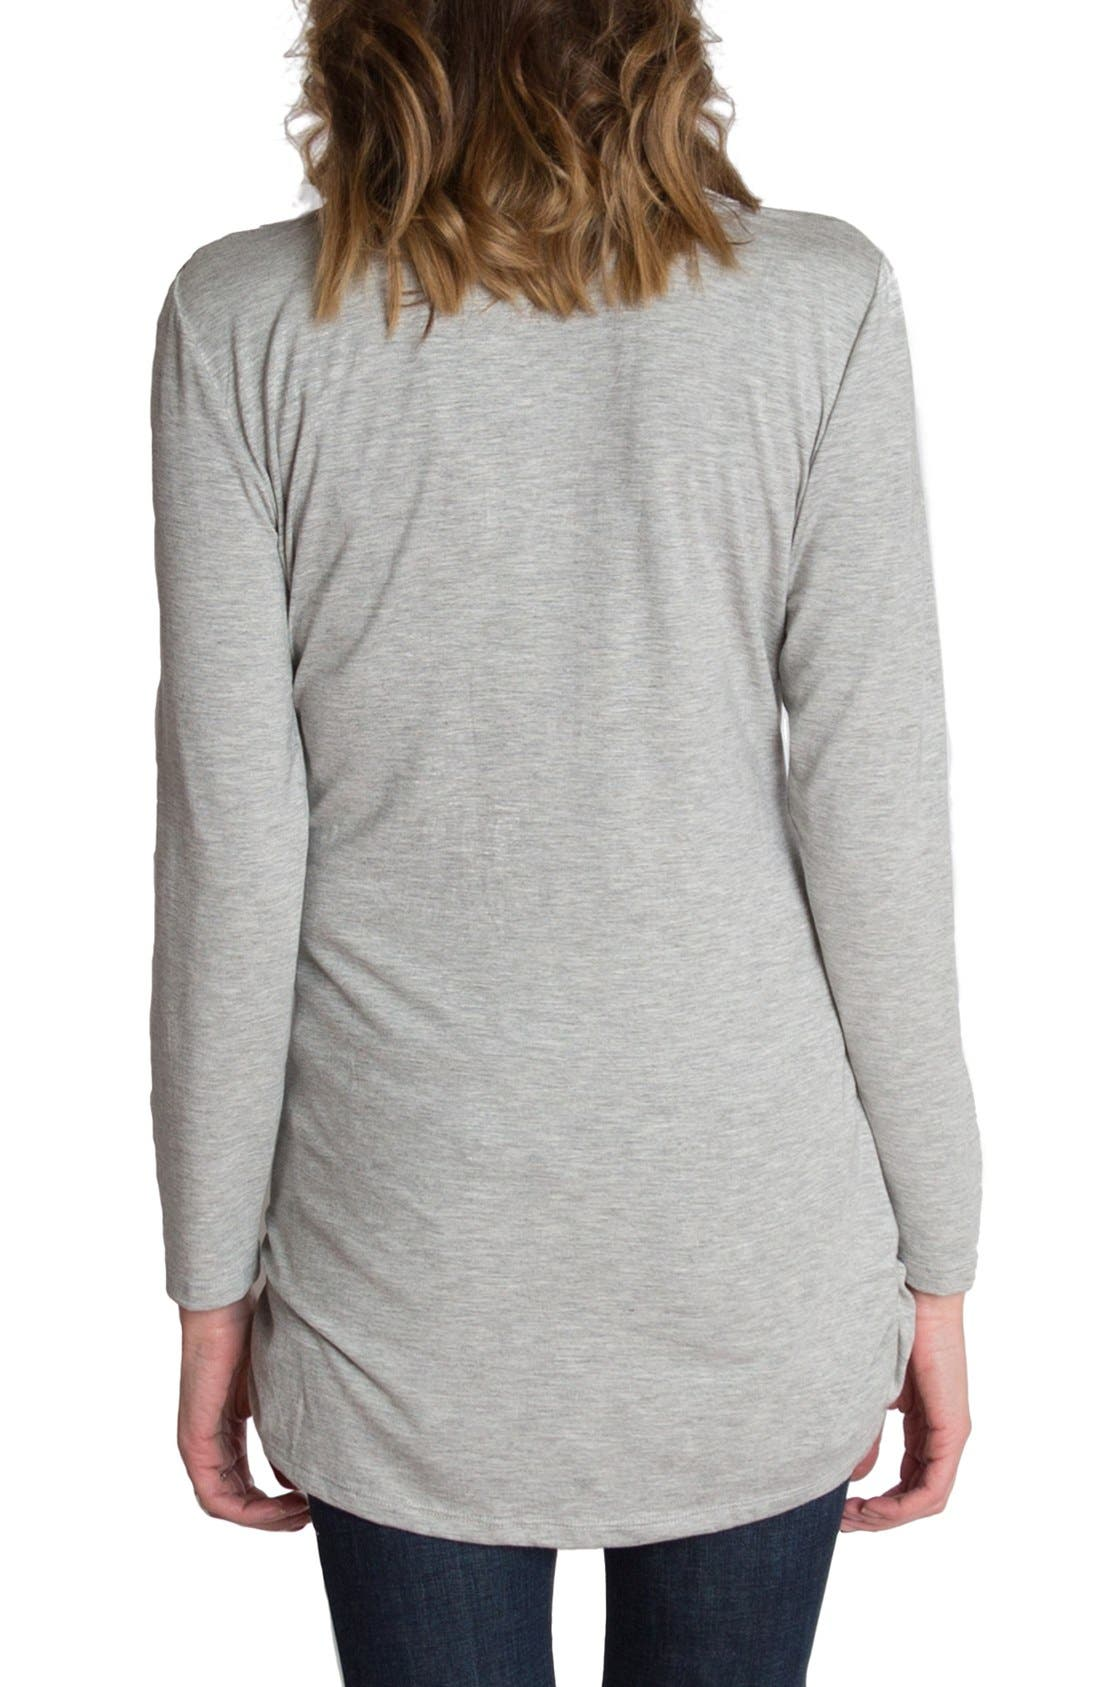 'Luxe' Long Sleeve Nursing Tee,                             Alternate thumbnail 2, color,                             Heather Gray